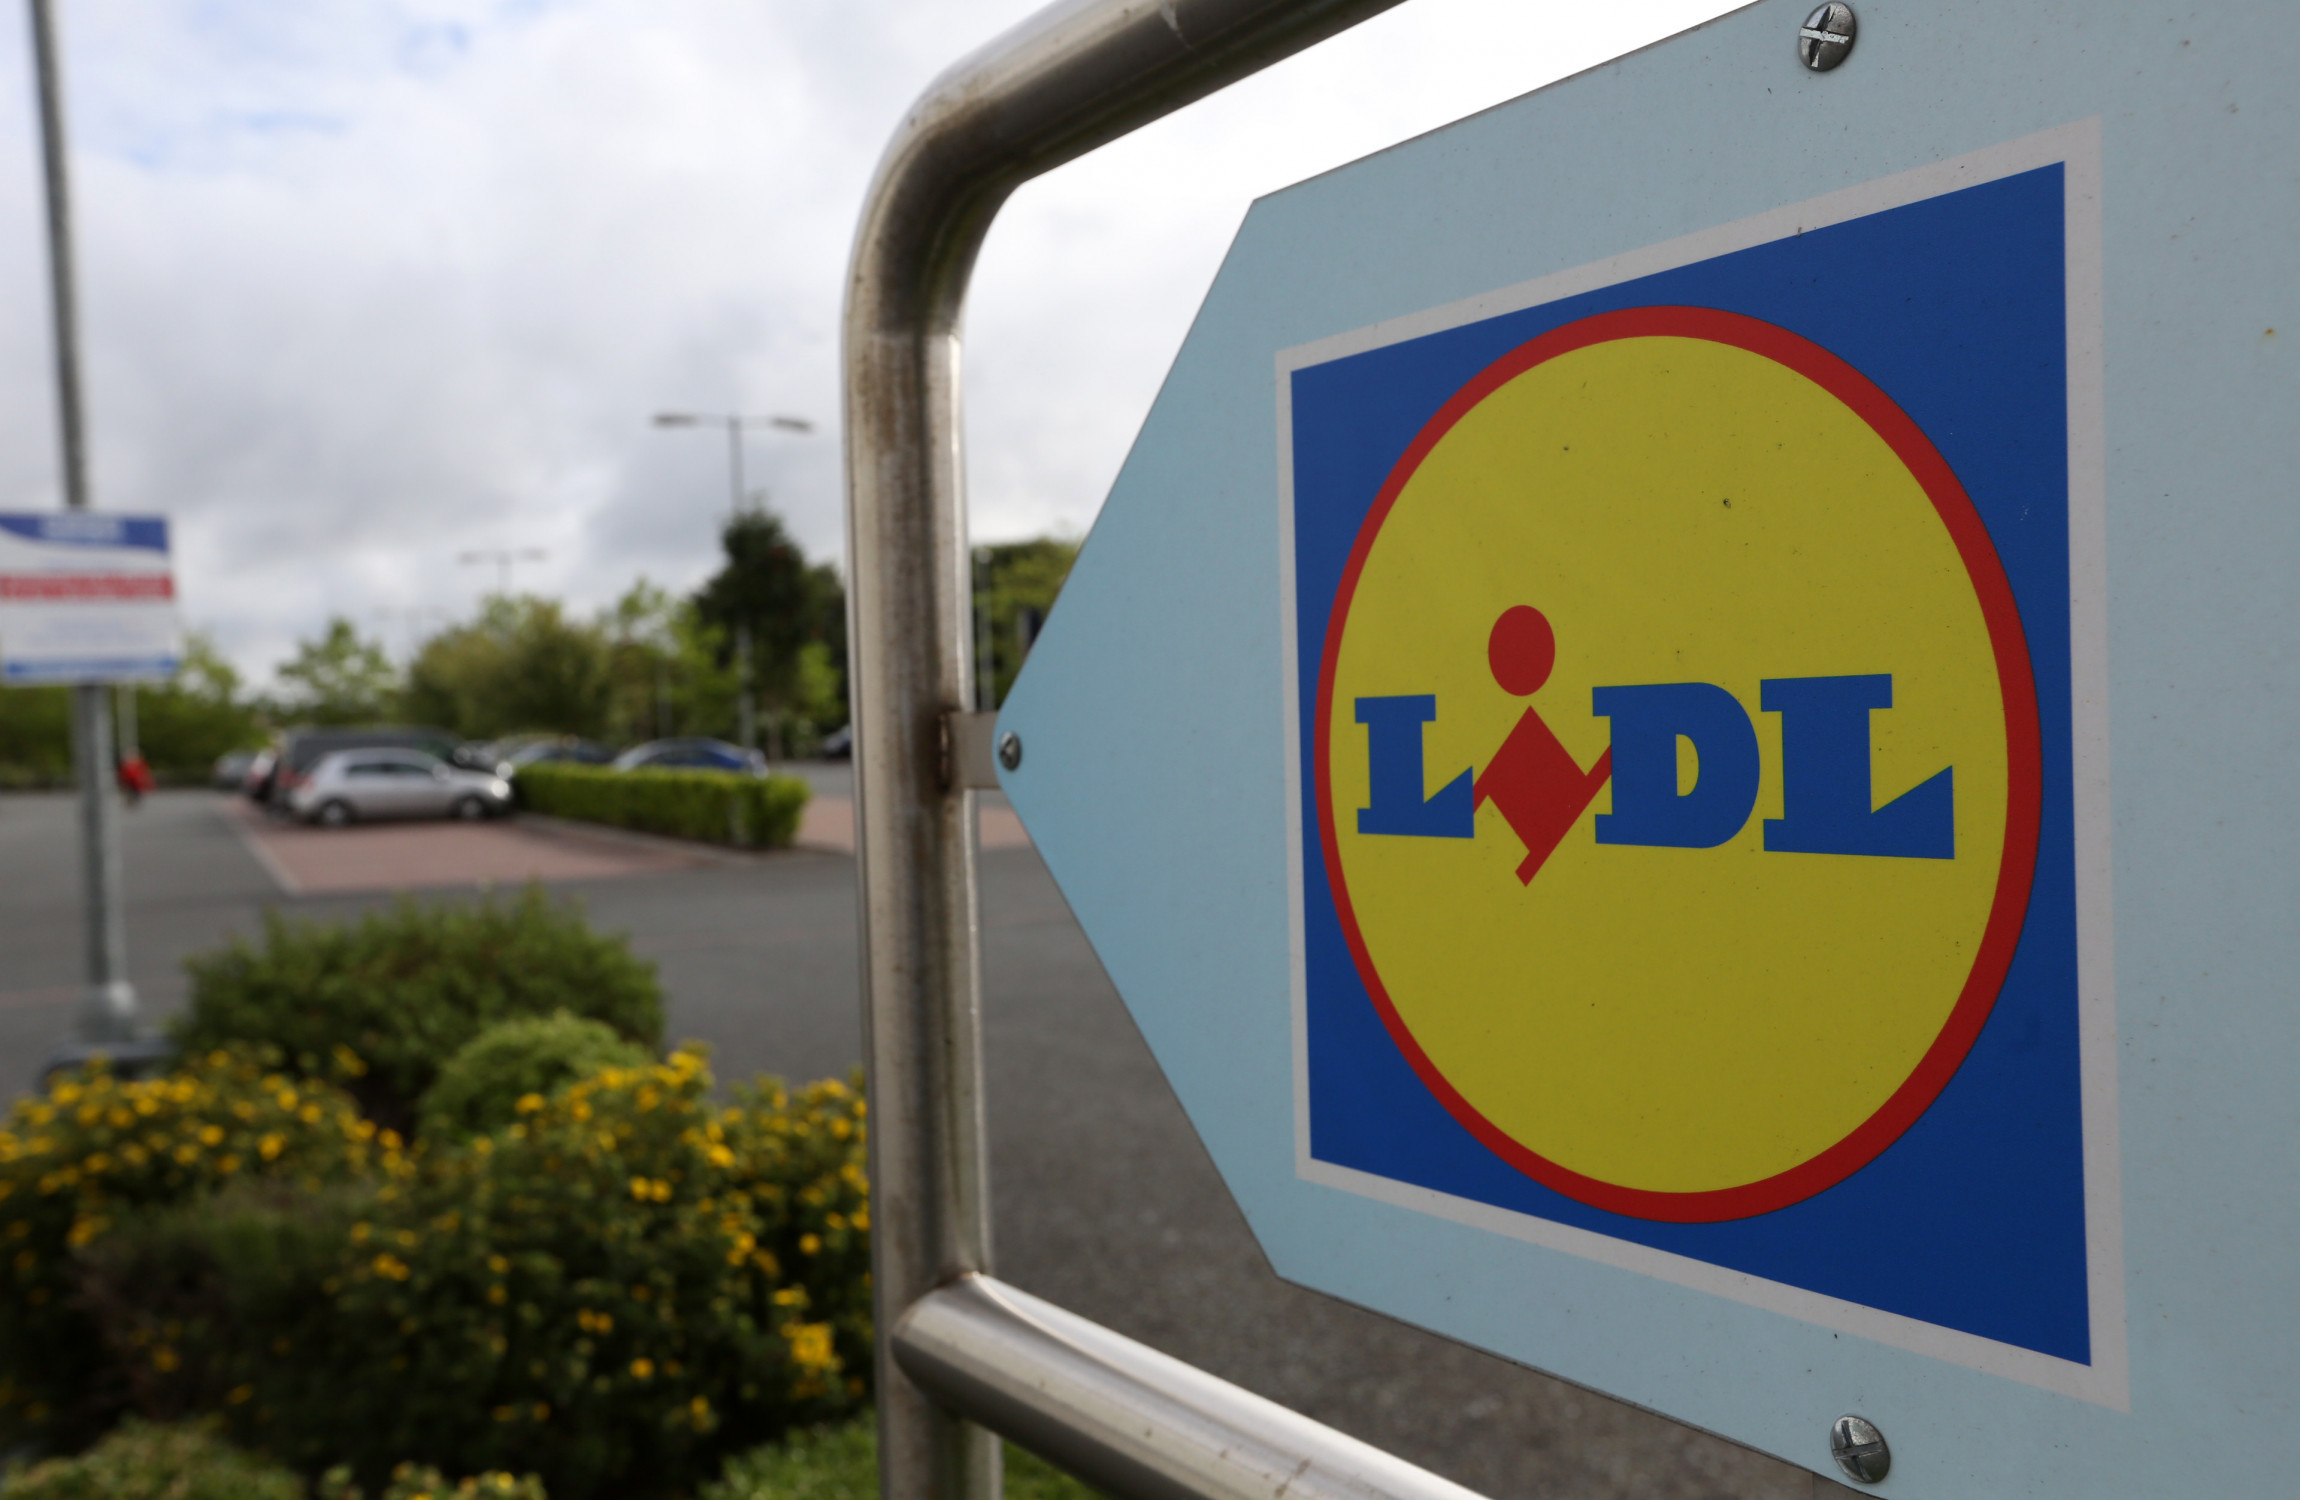 Arrests made after Lidl 'looted and smashed up by digger'